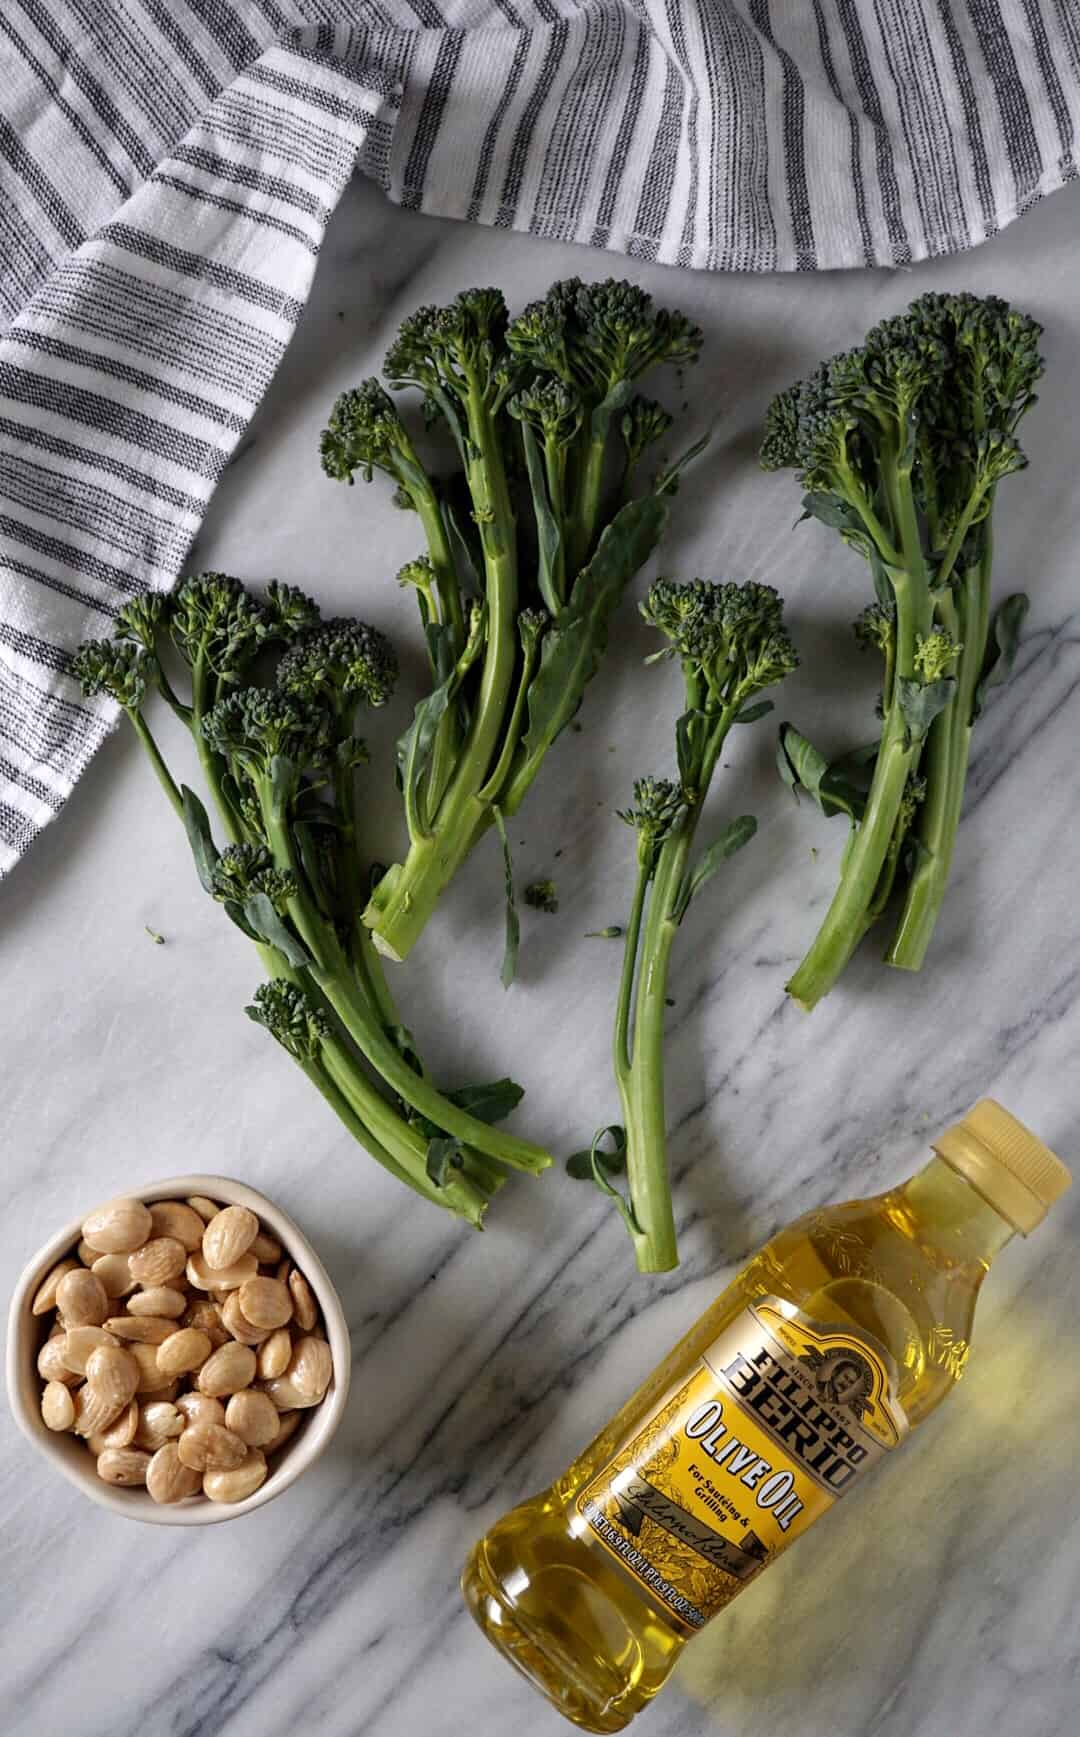 Broccolini, marcona almonds, olive oil, and a dish towel